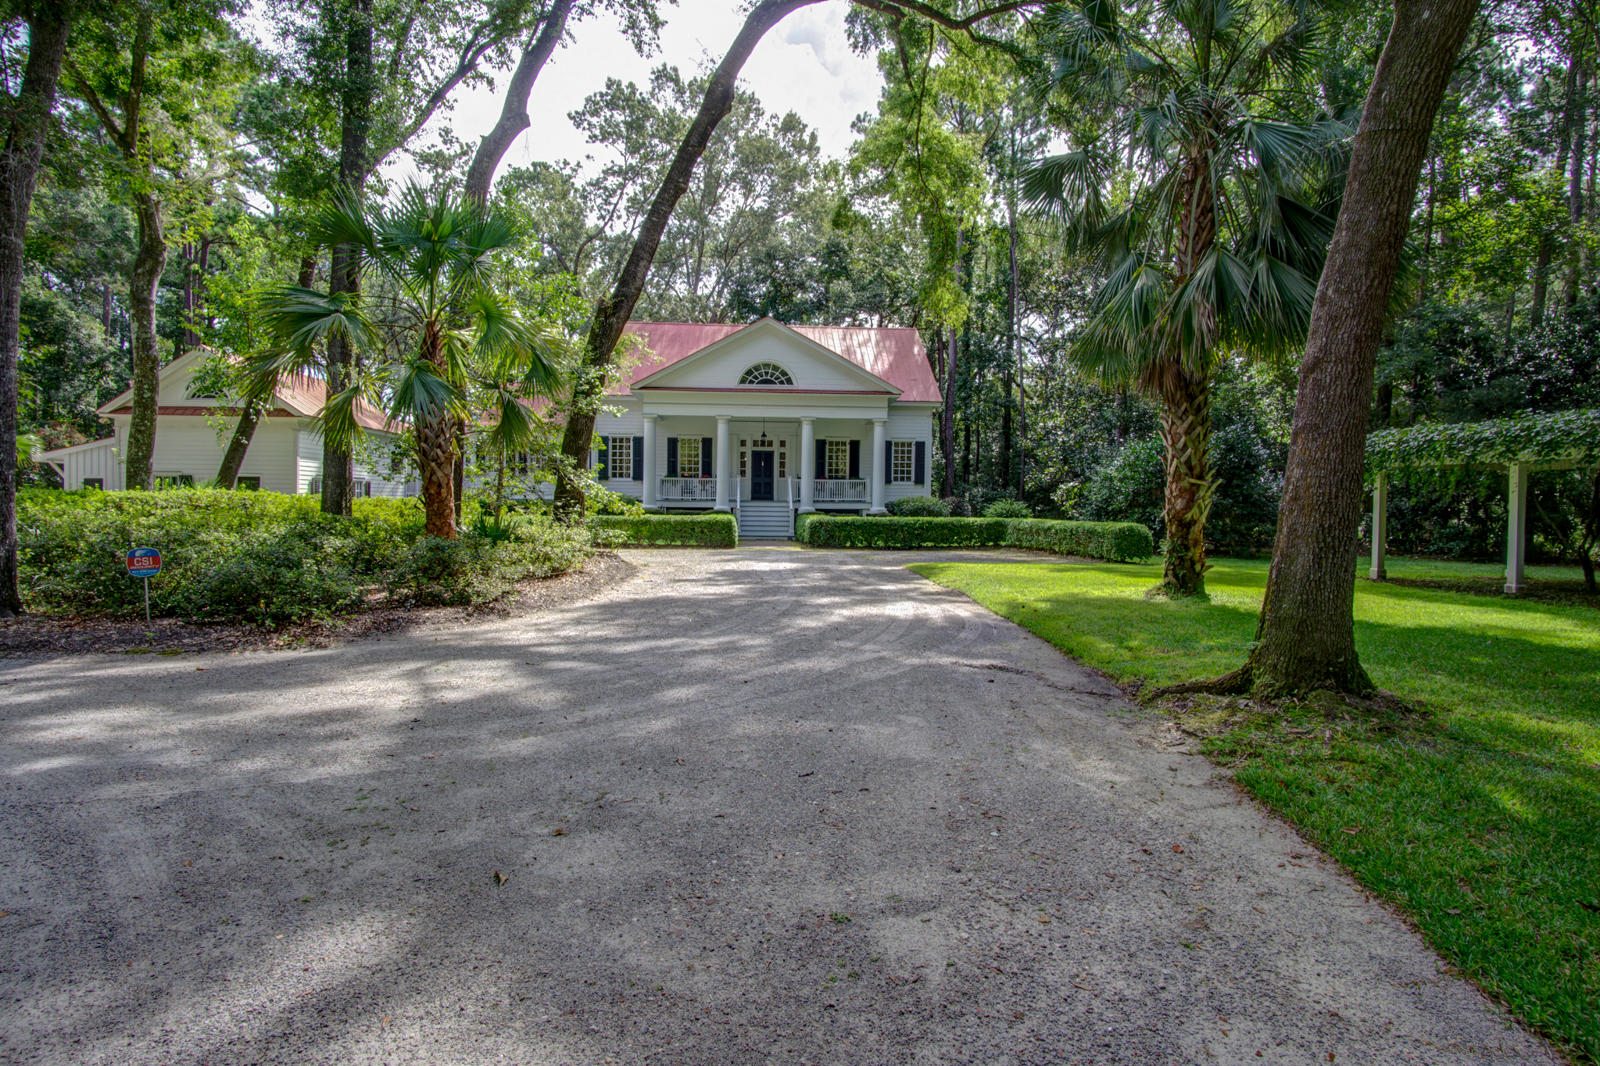 Bull Point Plantation Homes For Sale - 123 Bull Point, Seabrook, SC - 50